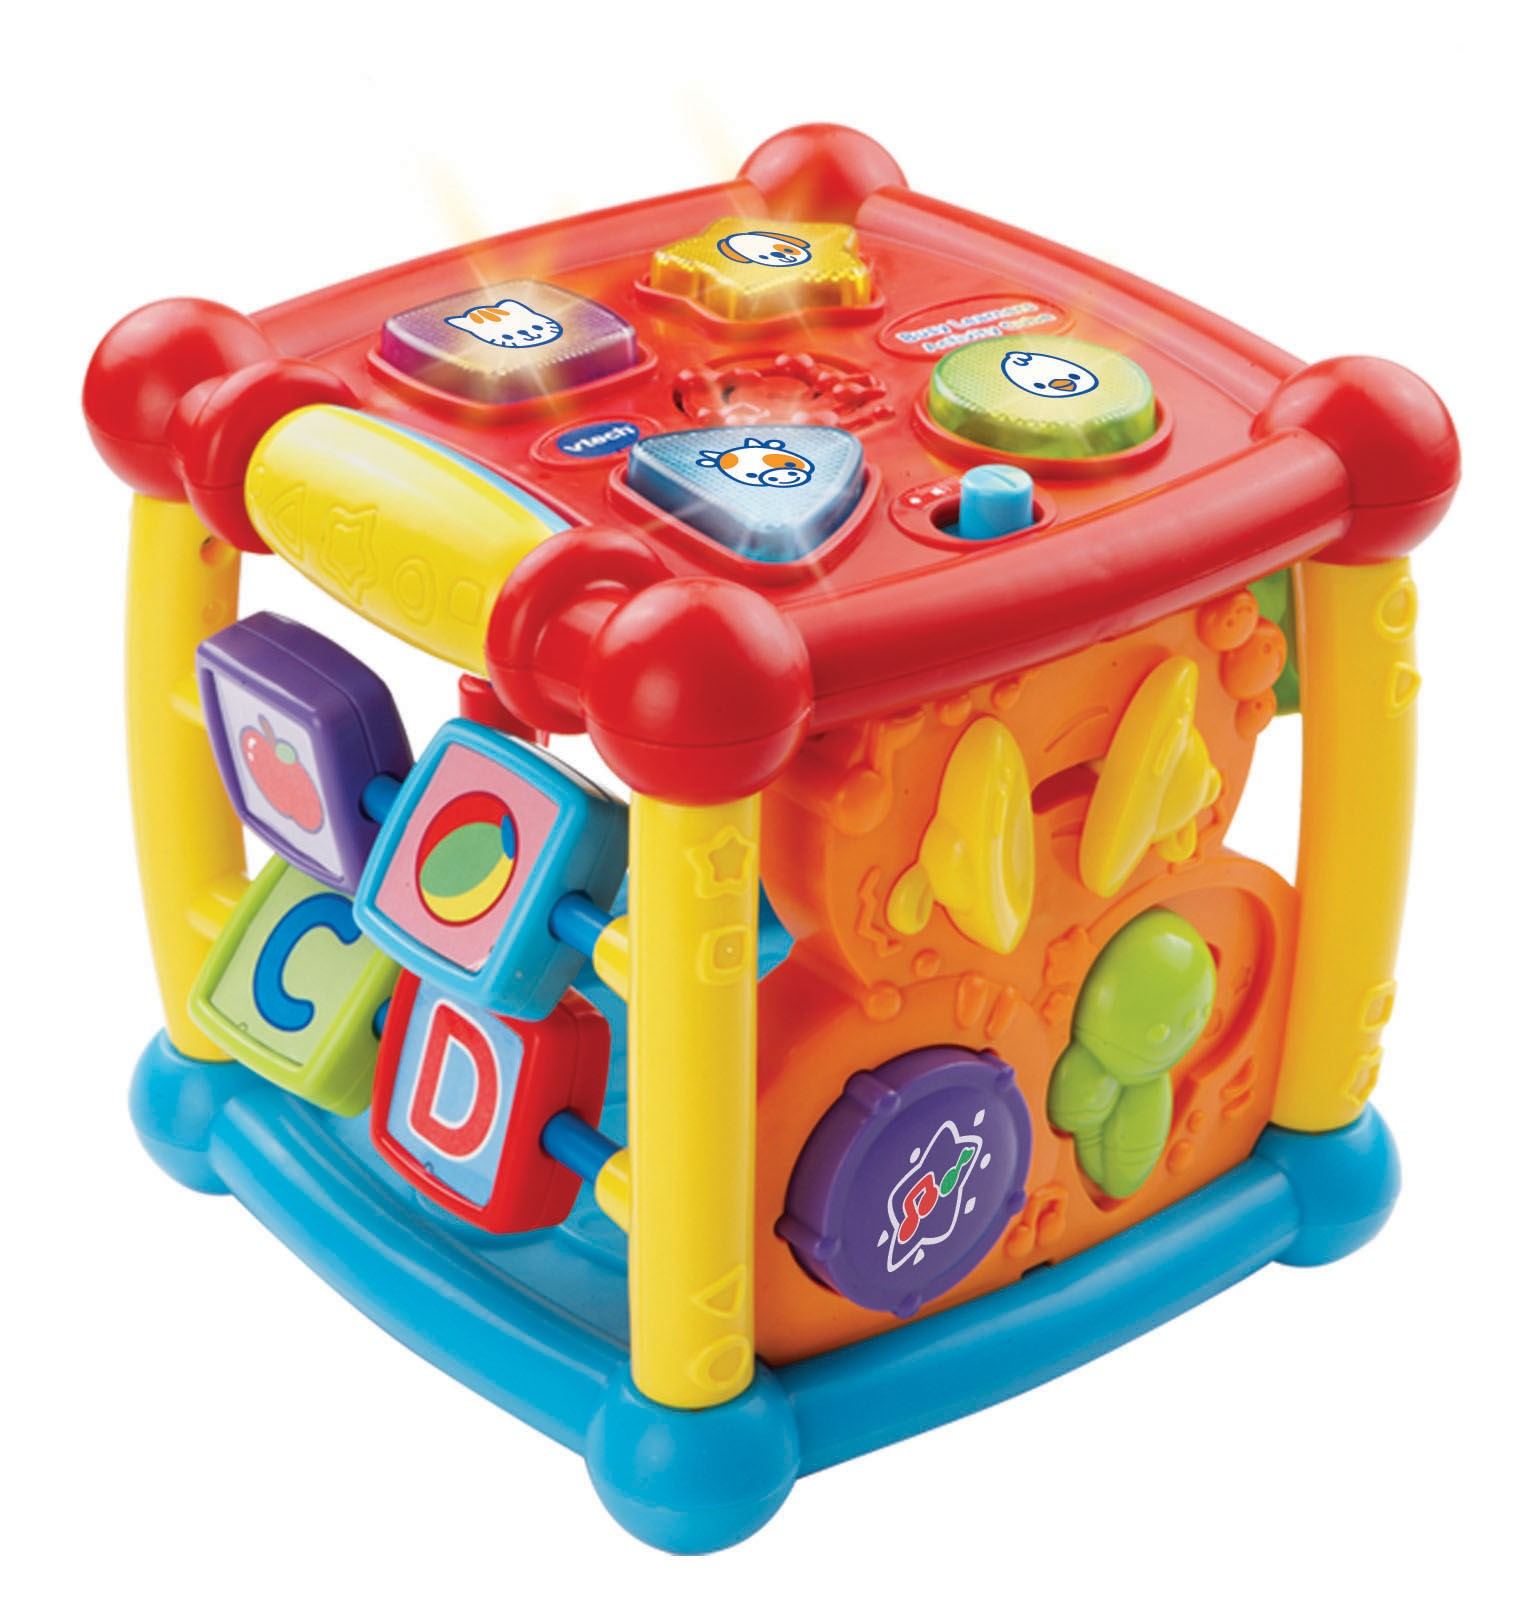 VTech Busy Learners Activity Cube Walmart